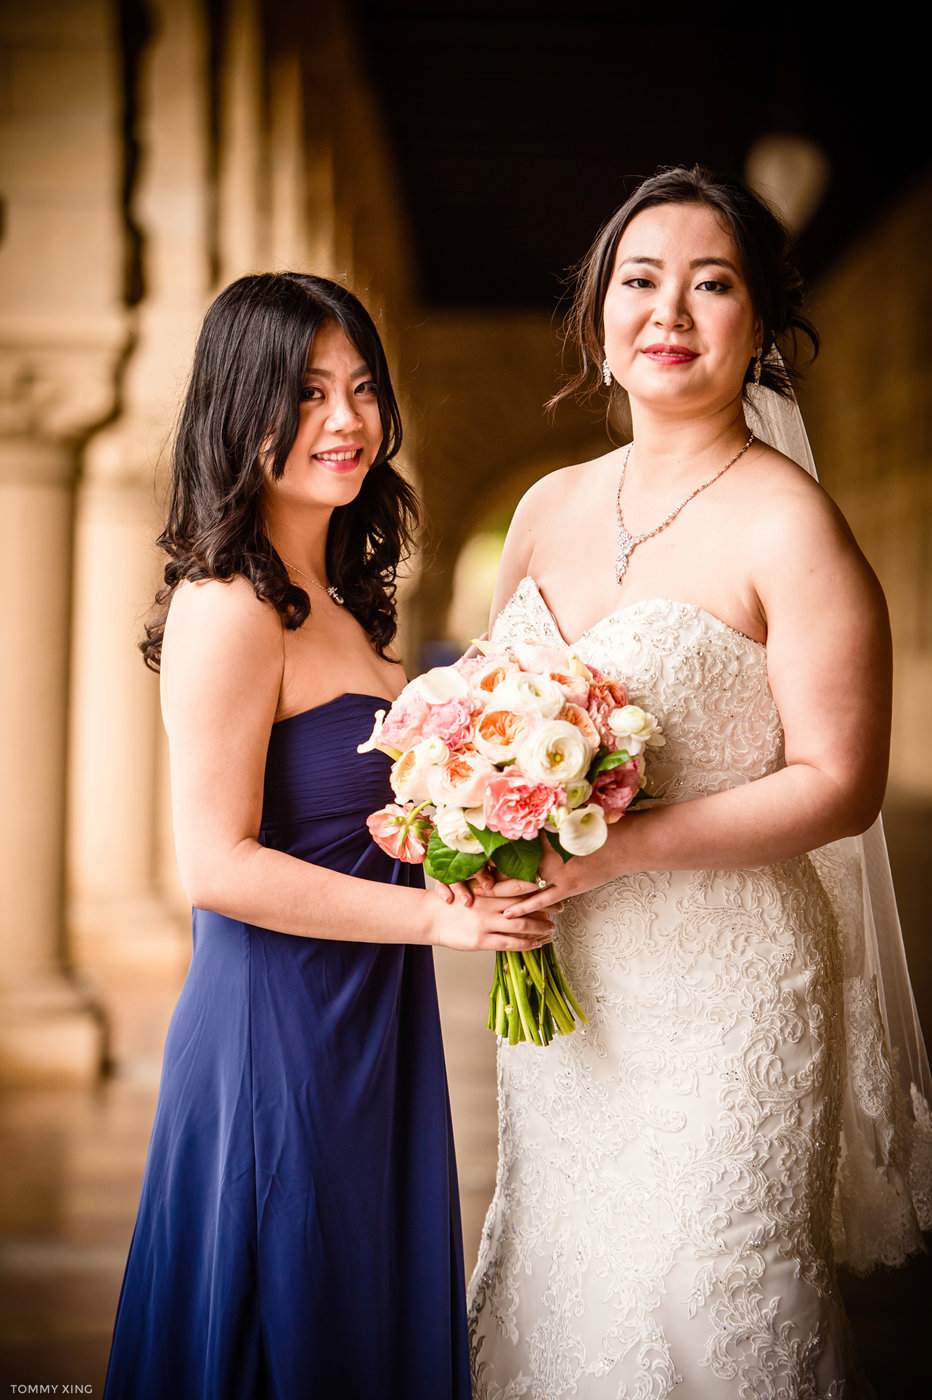 STANFORD MEMORIAL CHURCH WEDDING - Wenjie & Chengcheng - SAN FRANCISCO BAY AREA 斯坦福教堂婚礼跟拍 - 洛杉矶婚礼婚纱照摄影师 Tommy Xing Photography145.jpg